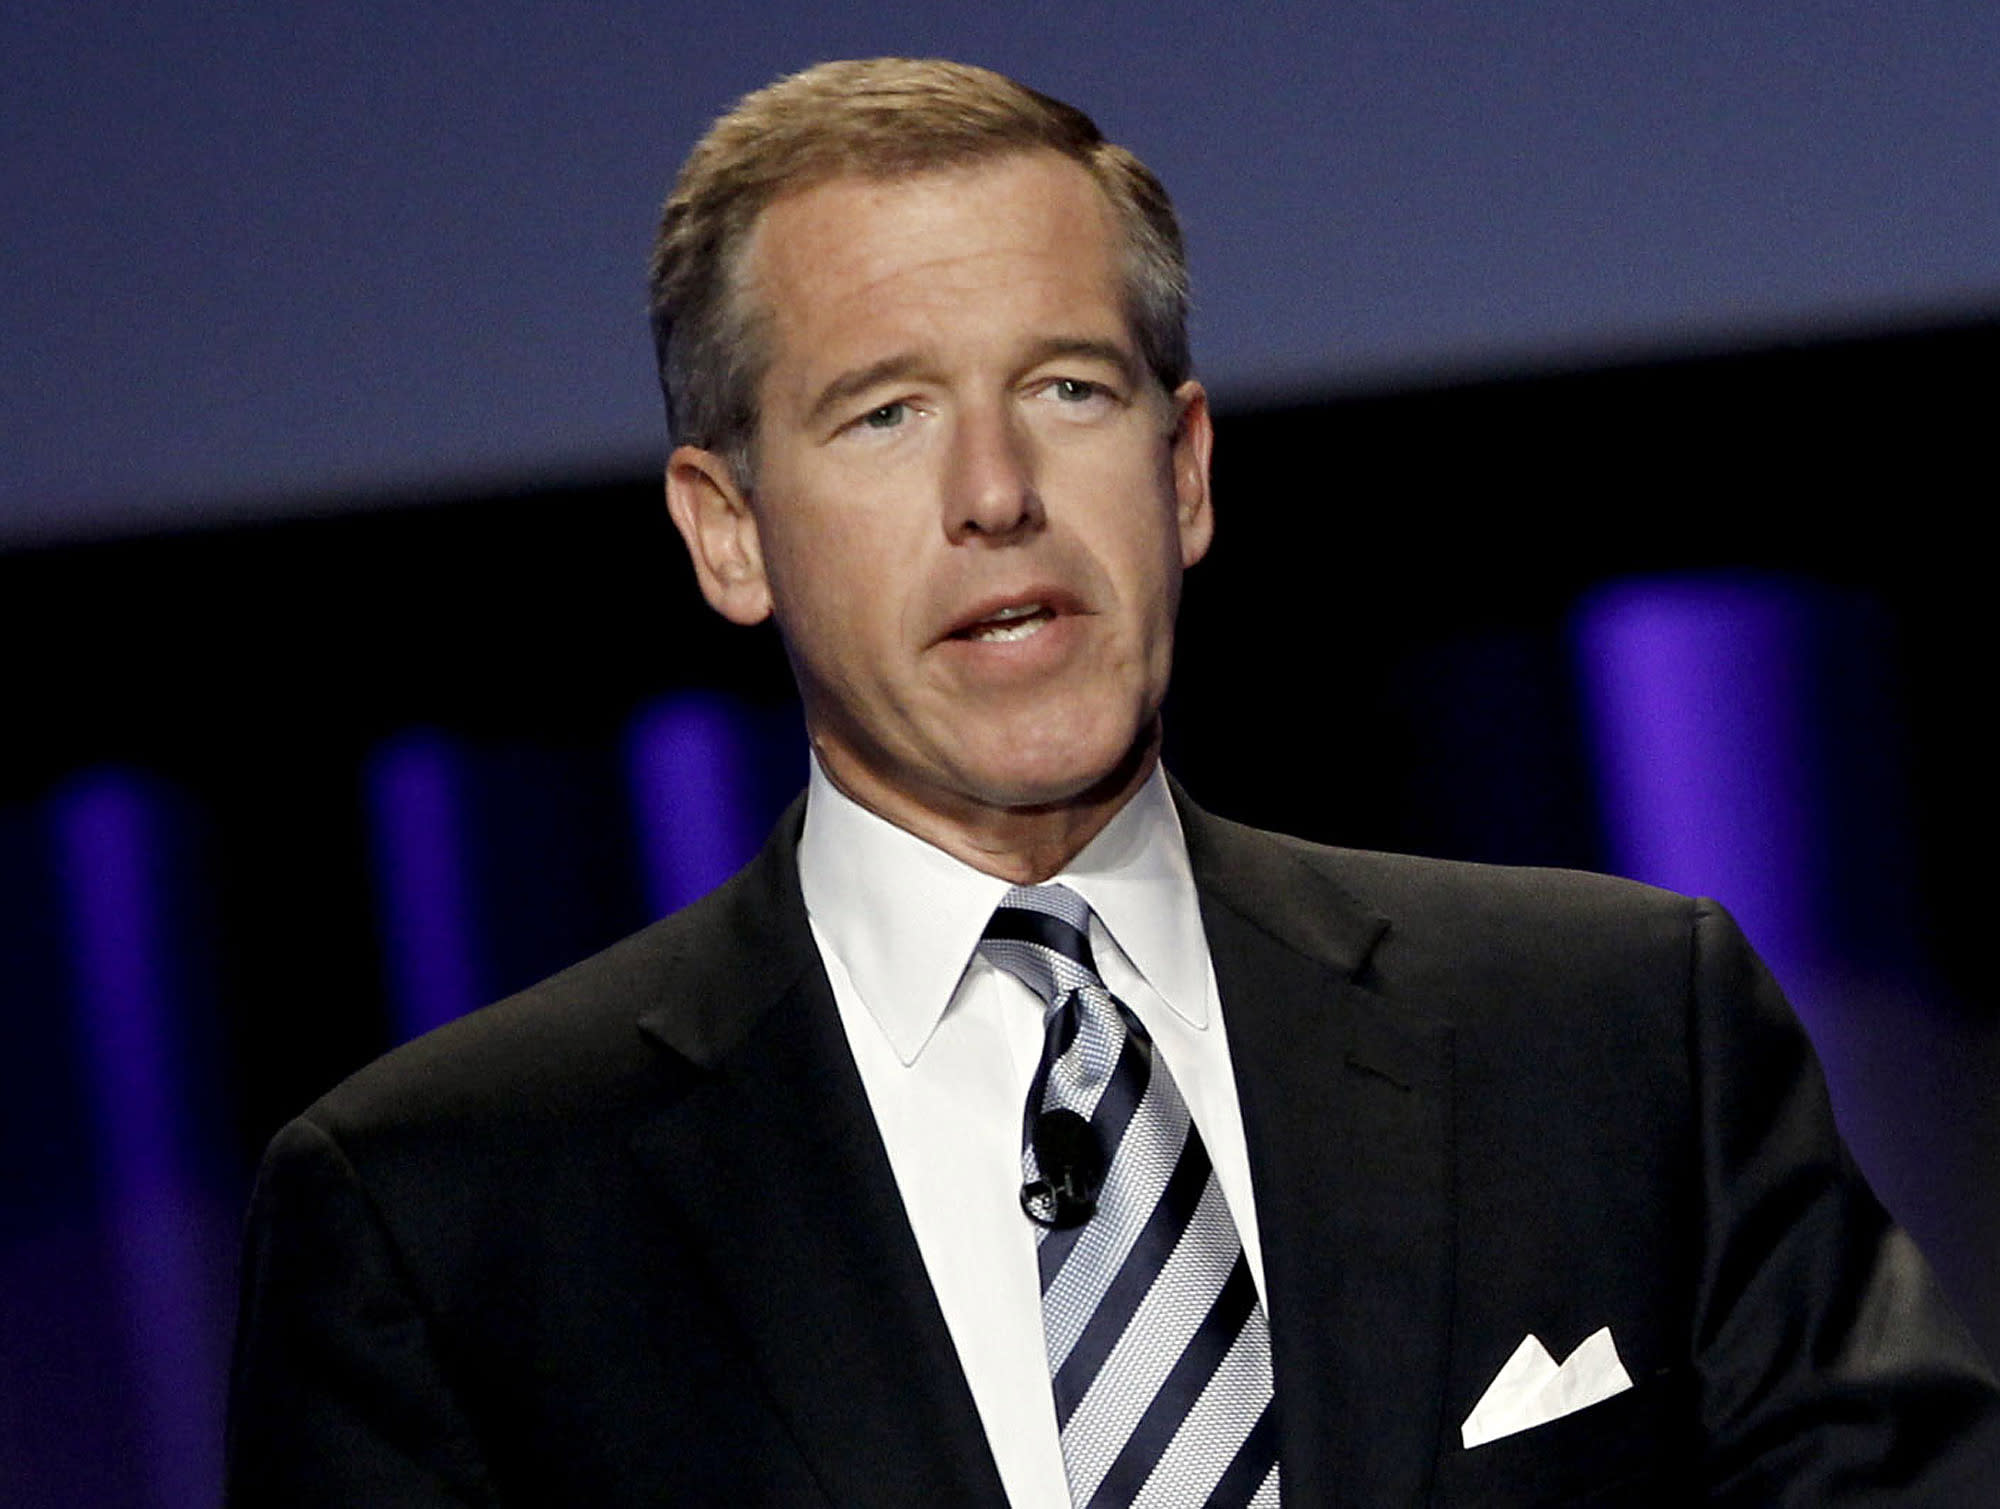 Brian Williams settles into new job at MSNBC